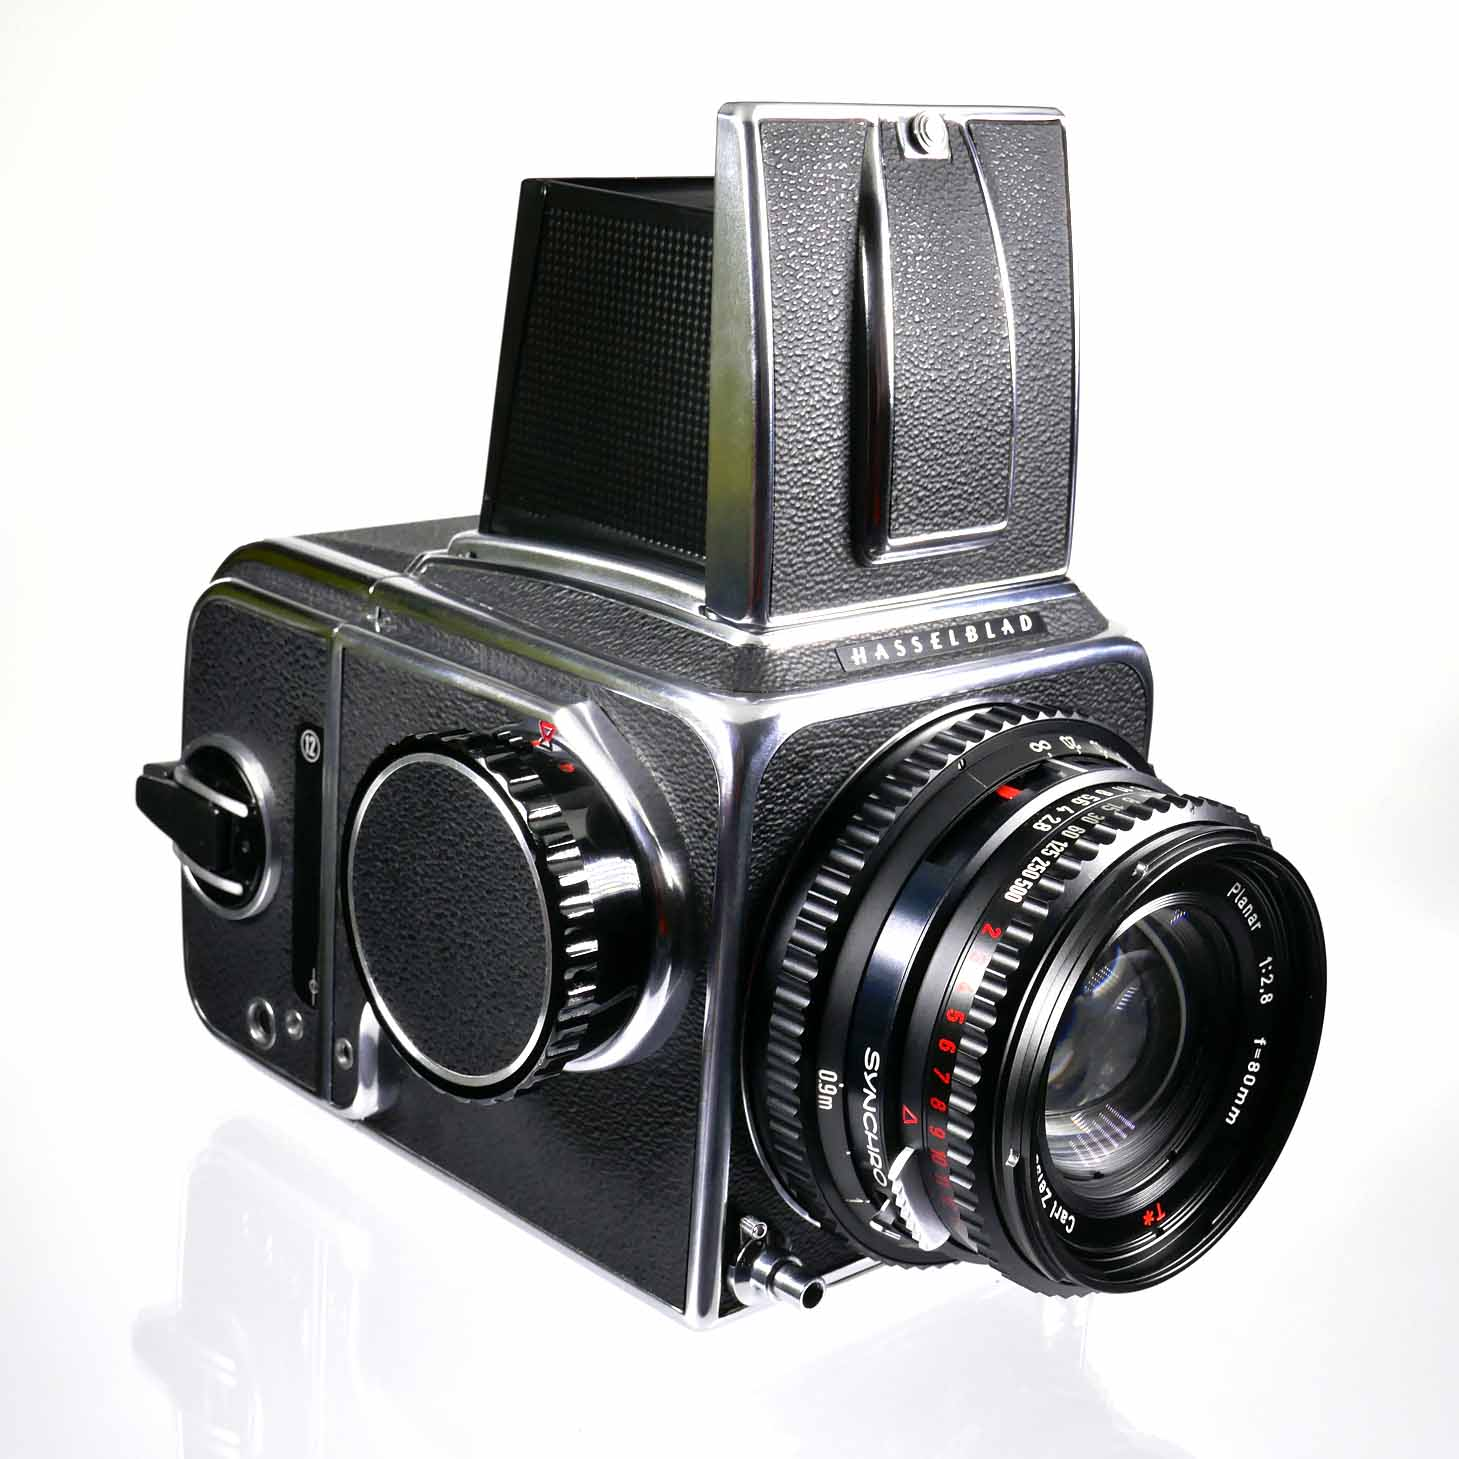 clean-cameras-Hasselblad-500cm-Carl-Zeiss-80mm-03